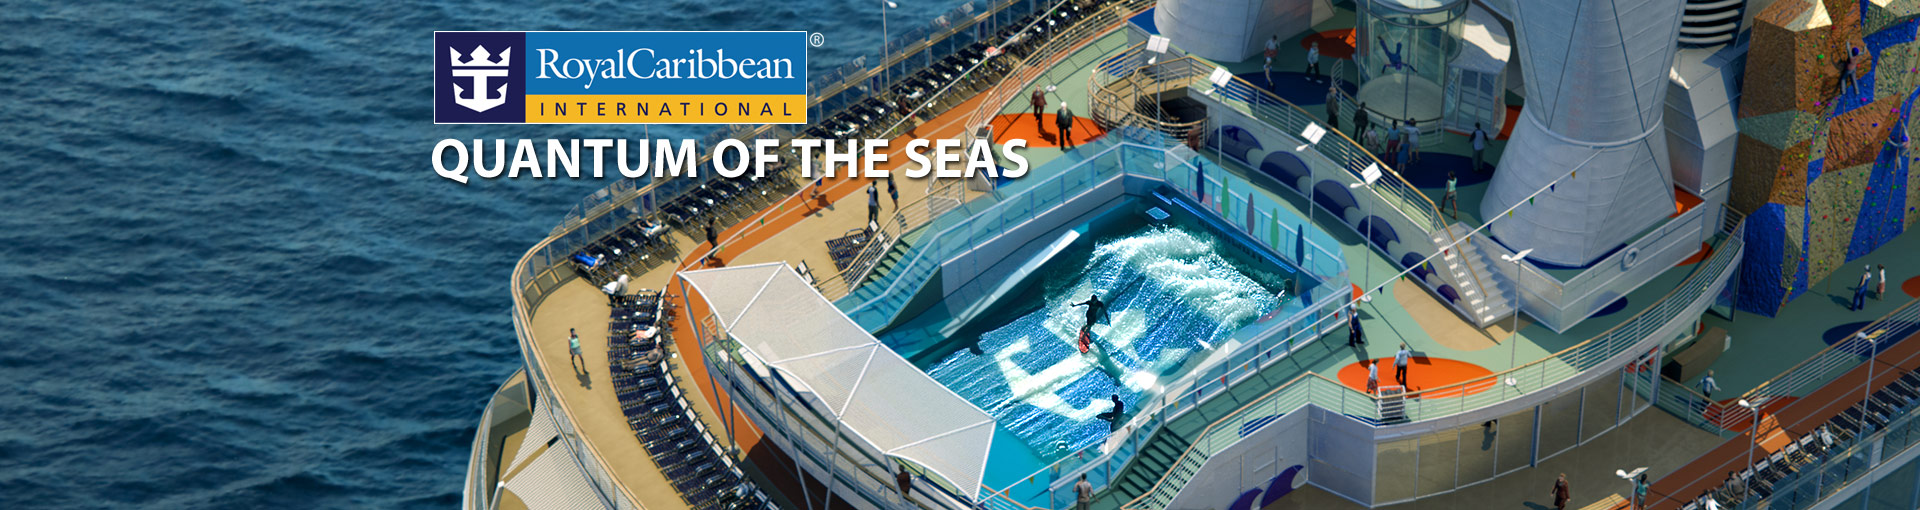 Royal Caribbean Quantum of the Seas cruise ship